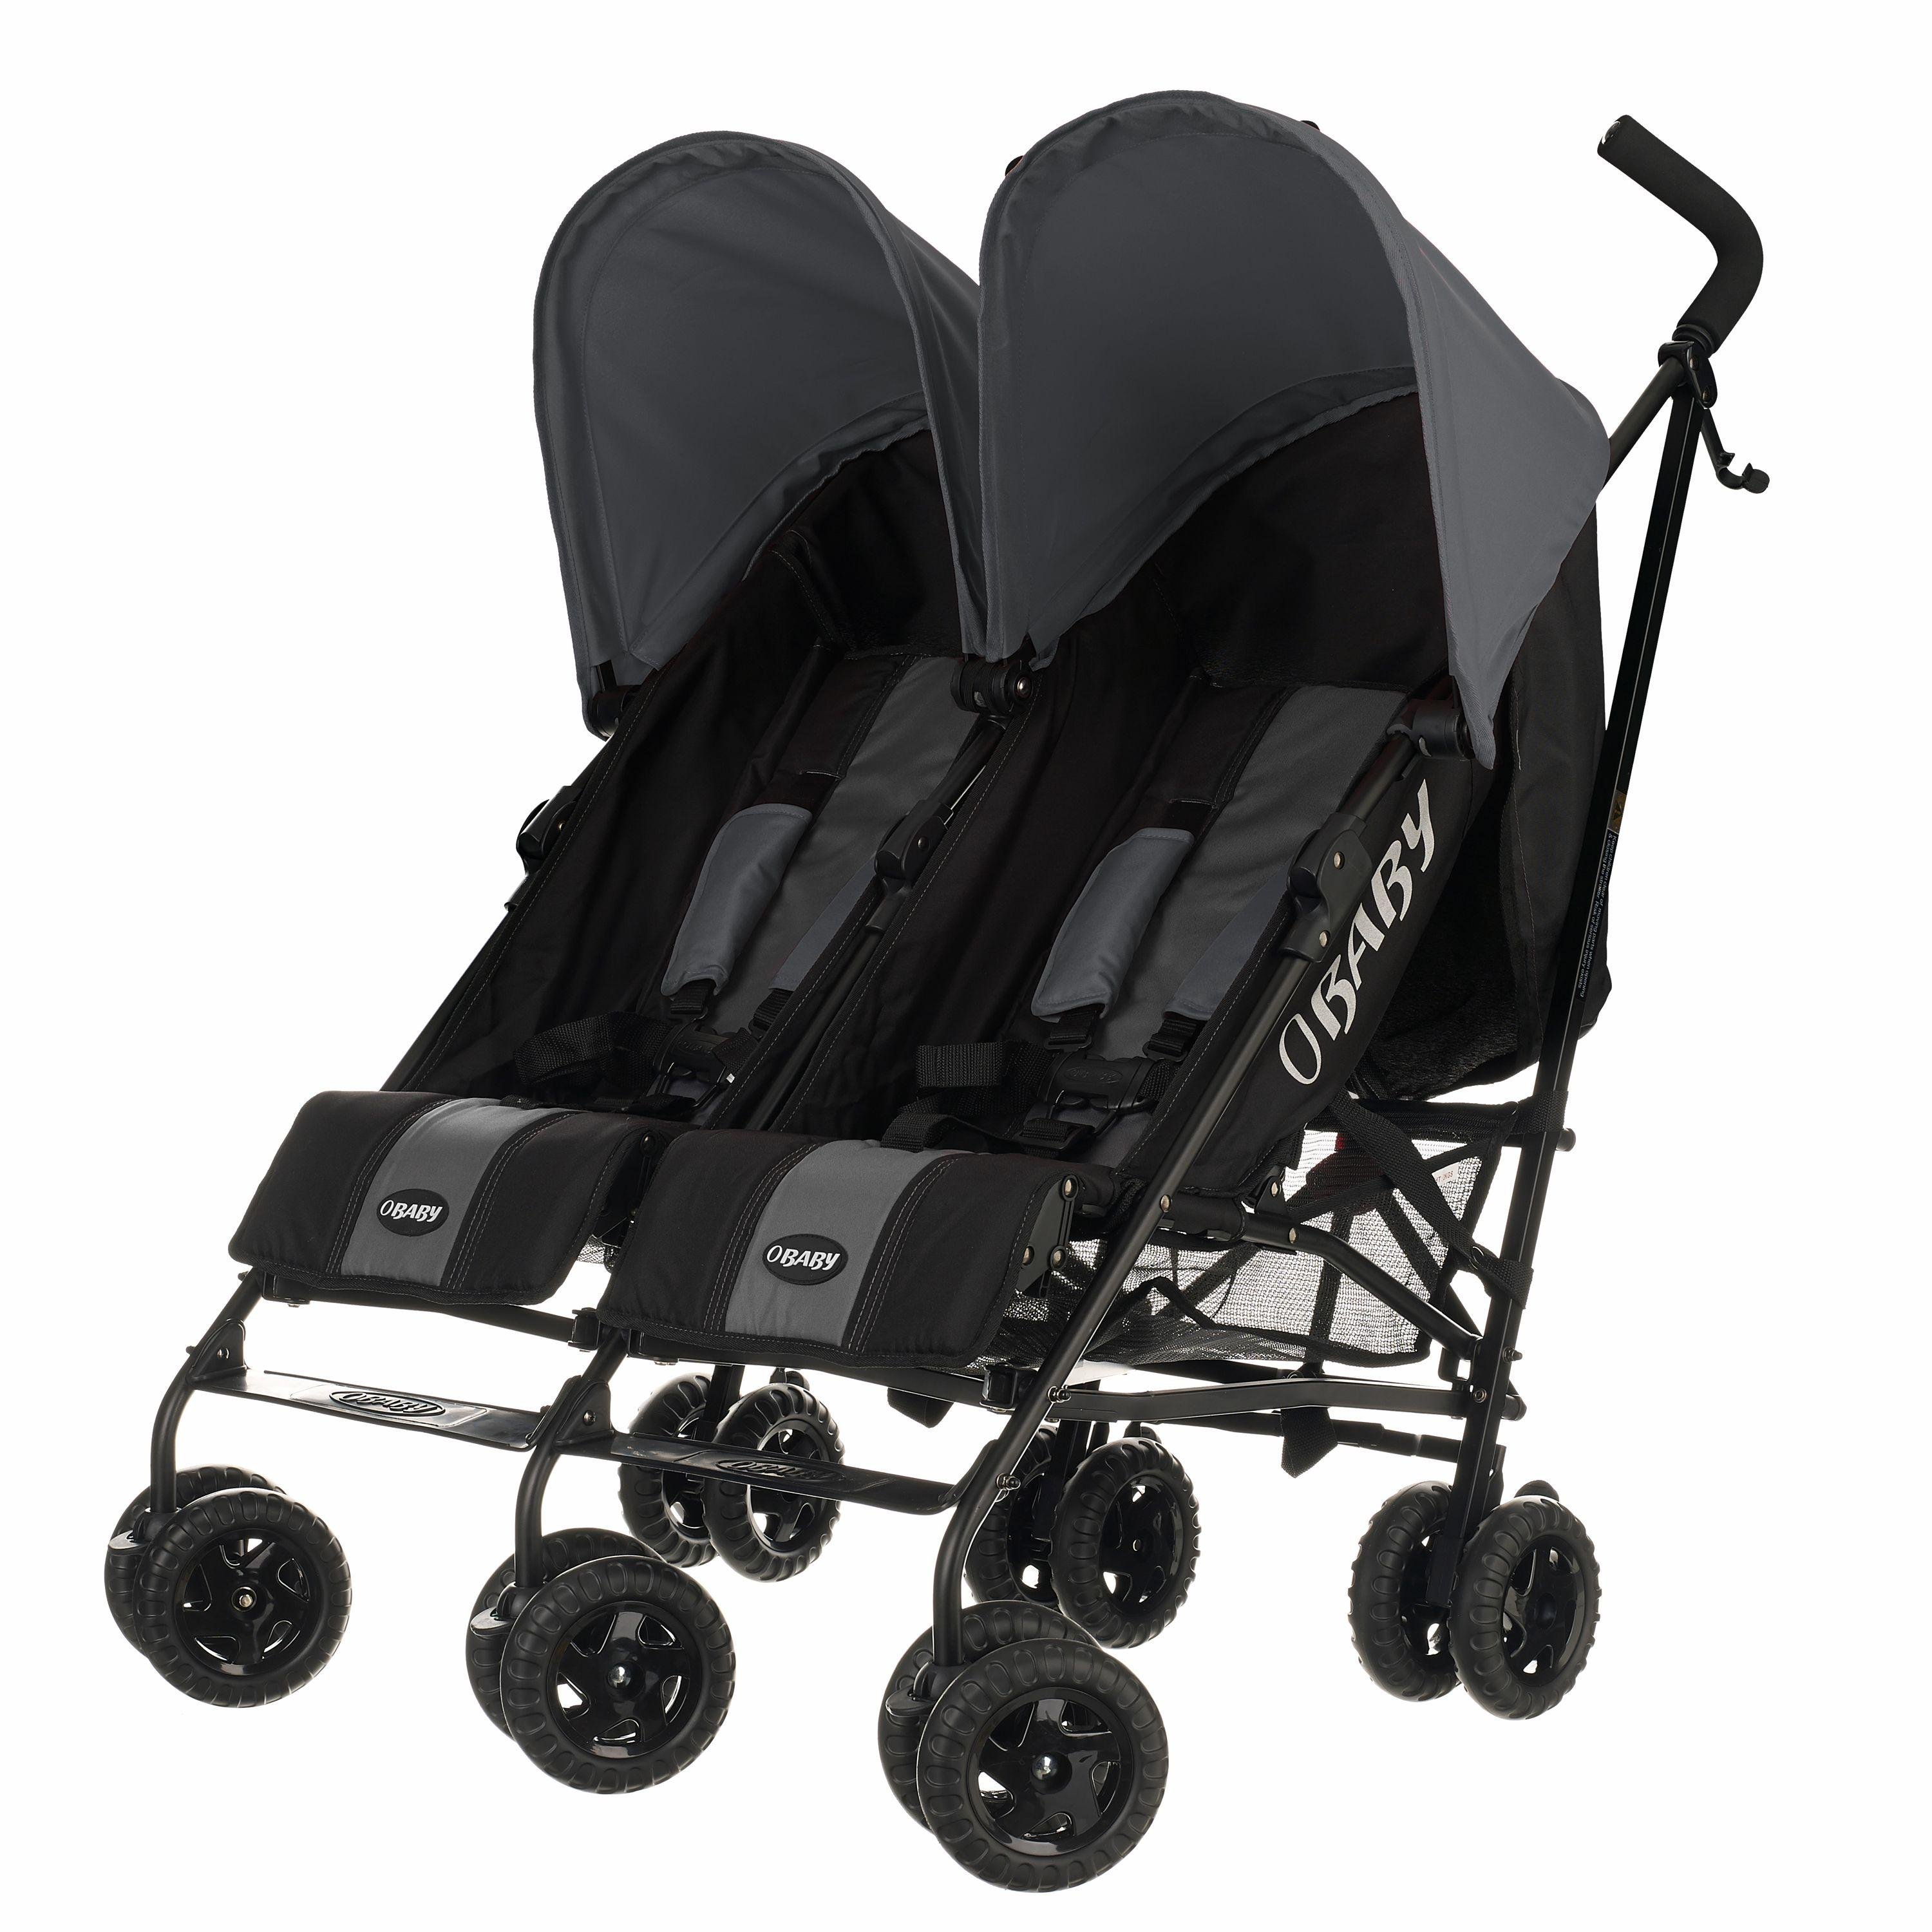 Obaby Apollo Black and Grey Twin Stroller - Grey.